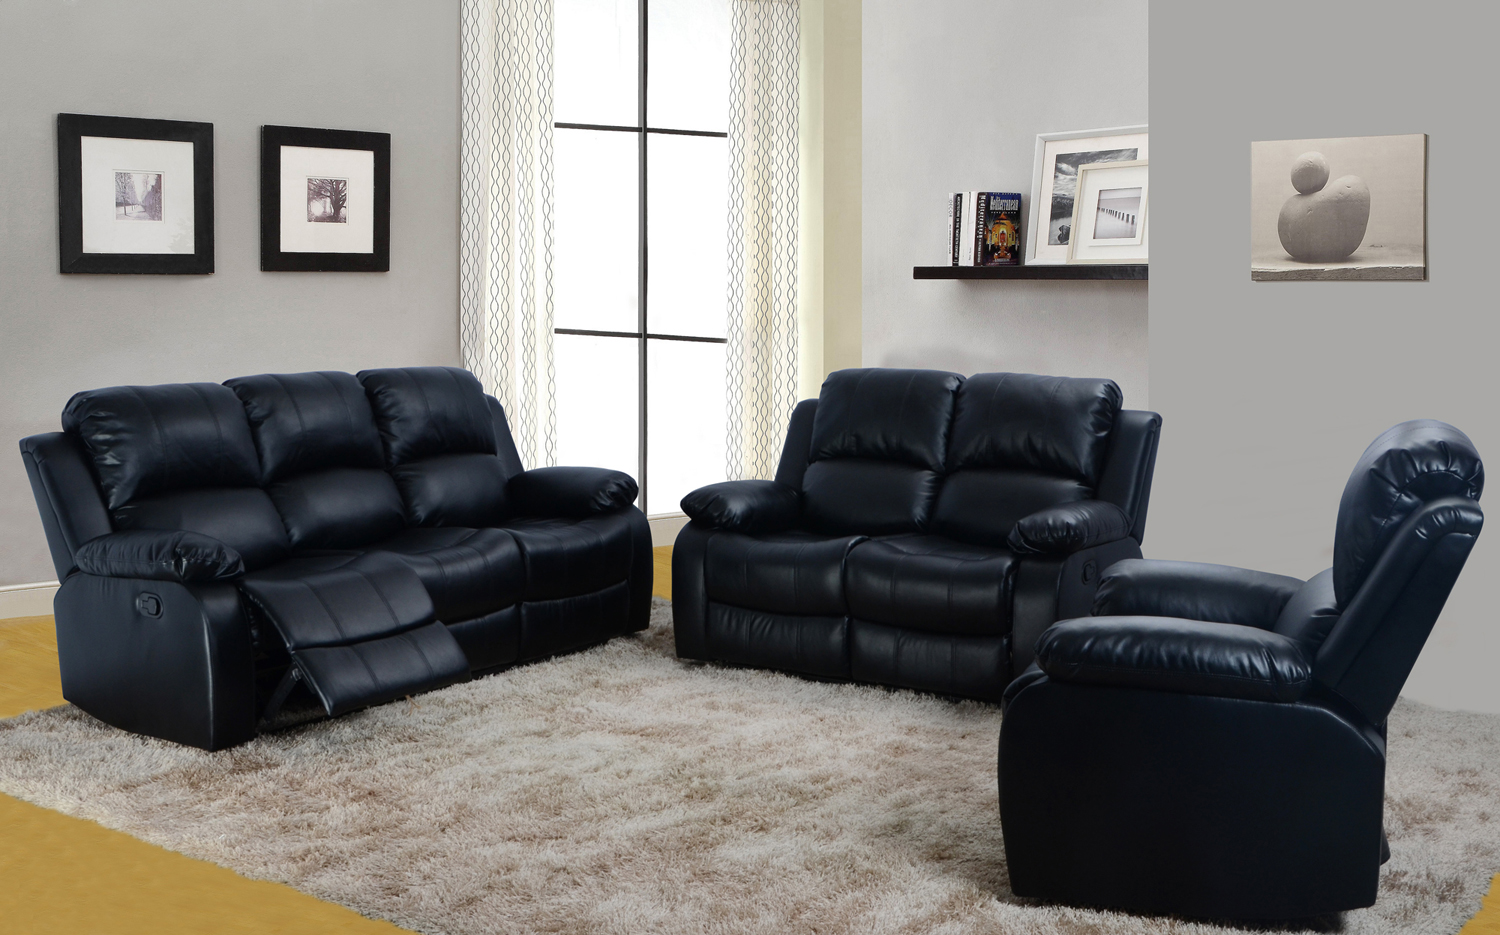 Excellent 3 Piece Bonded Faux Leather Motion Recliner Sofa Loveseat Chair Set Black Total 5 Recliners Ibusinesslaw Wood Chair Design Ideas Ibusinesslaworg